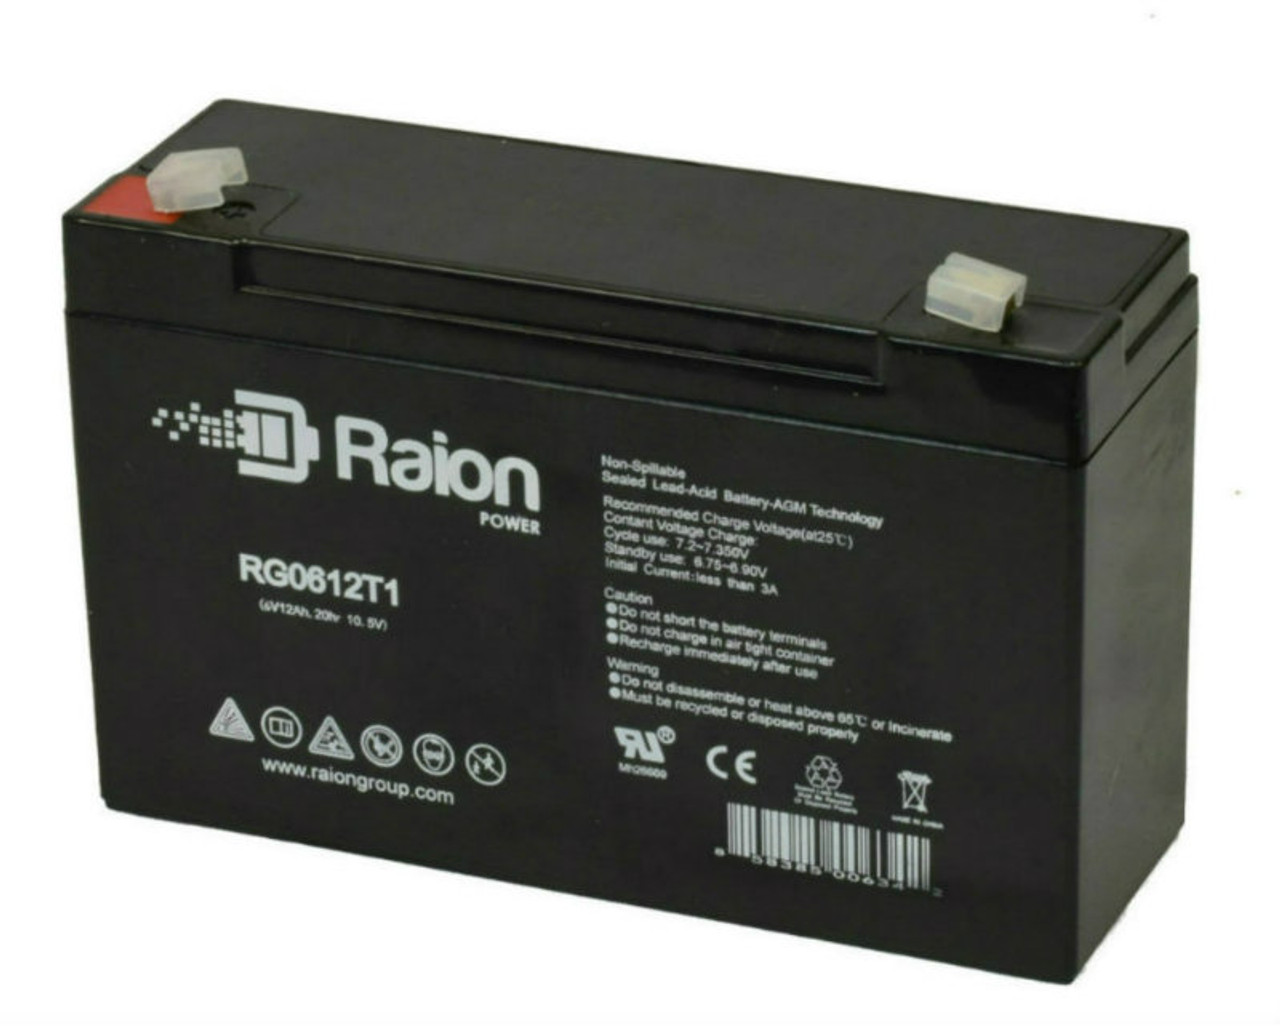 Raion Power RG06120T1 Replacement Battery Pack for Siltron MAGNA 140 emergency light